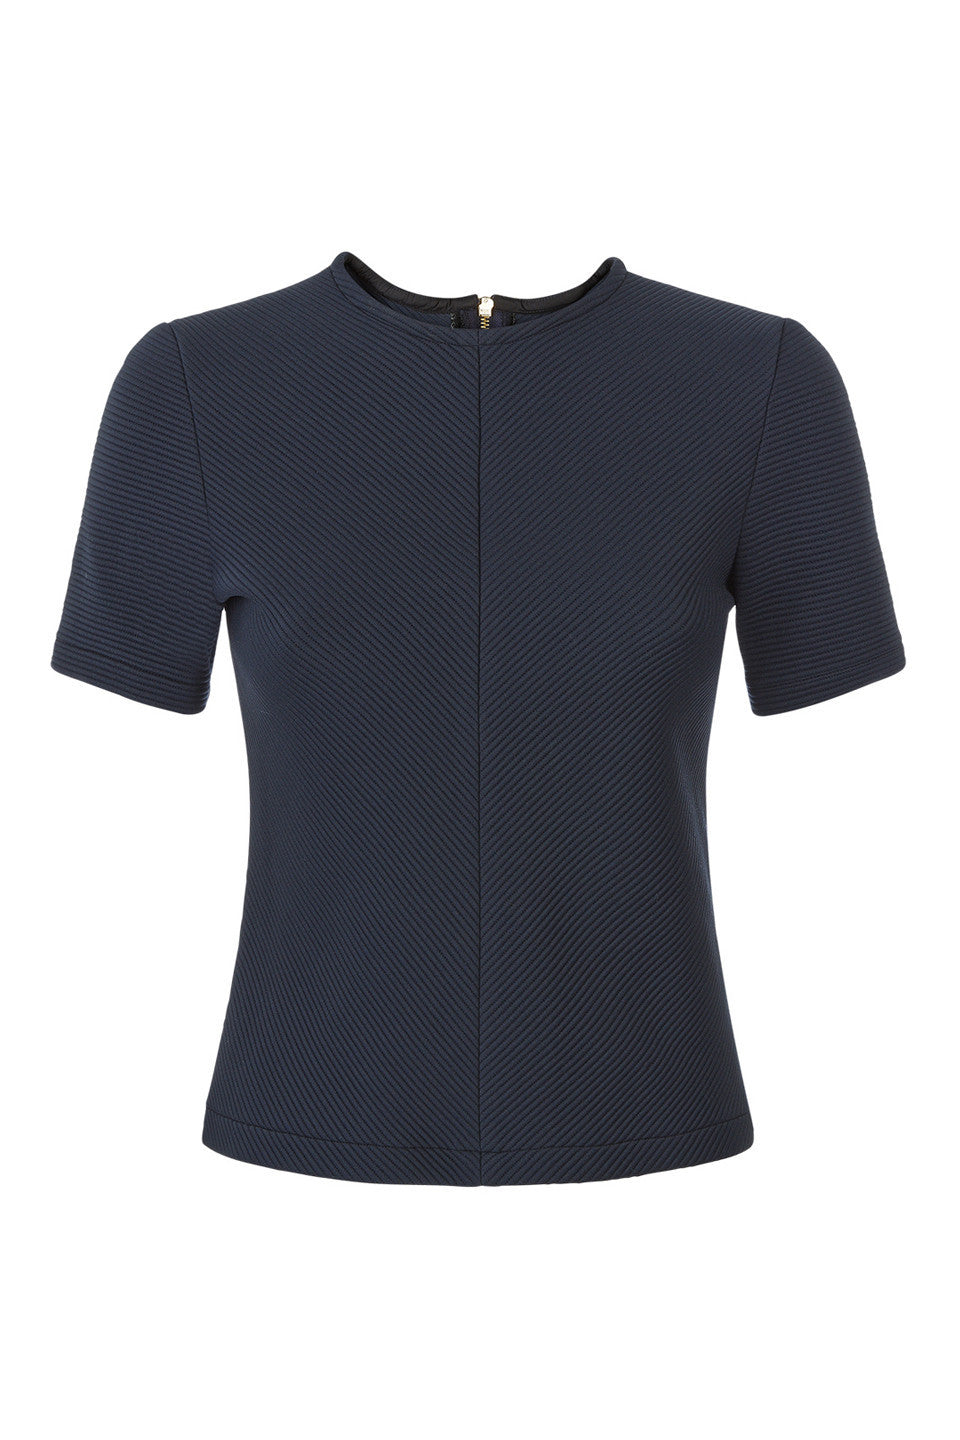 Ella T-shirt - Womenswear Outlet - Madderson London